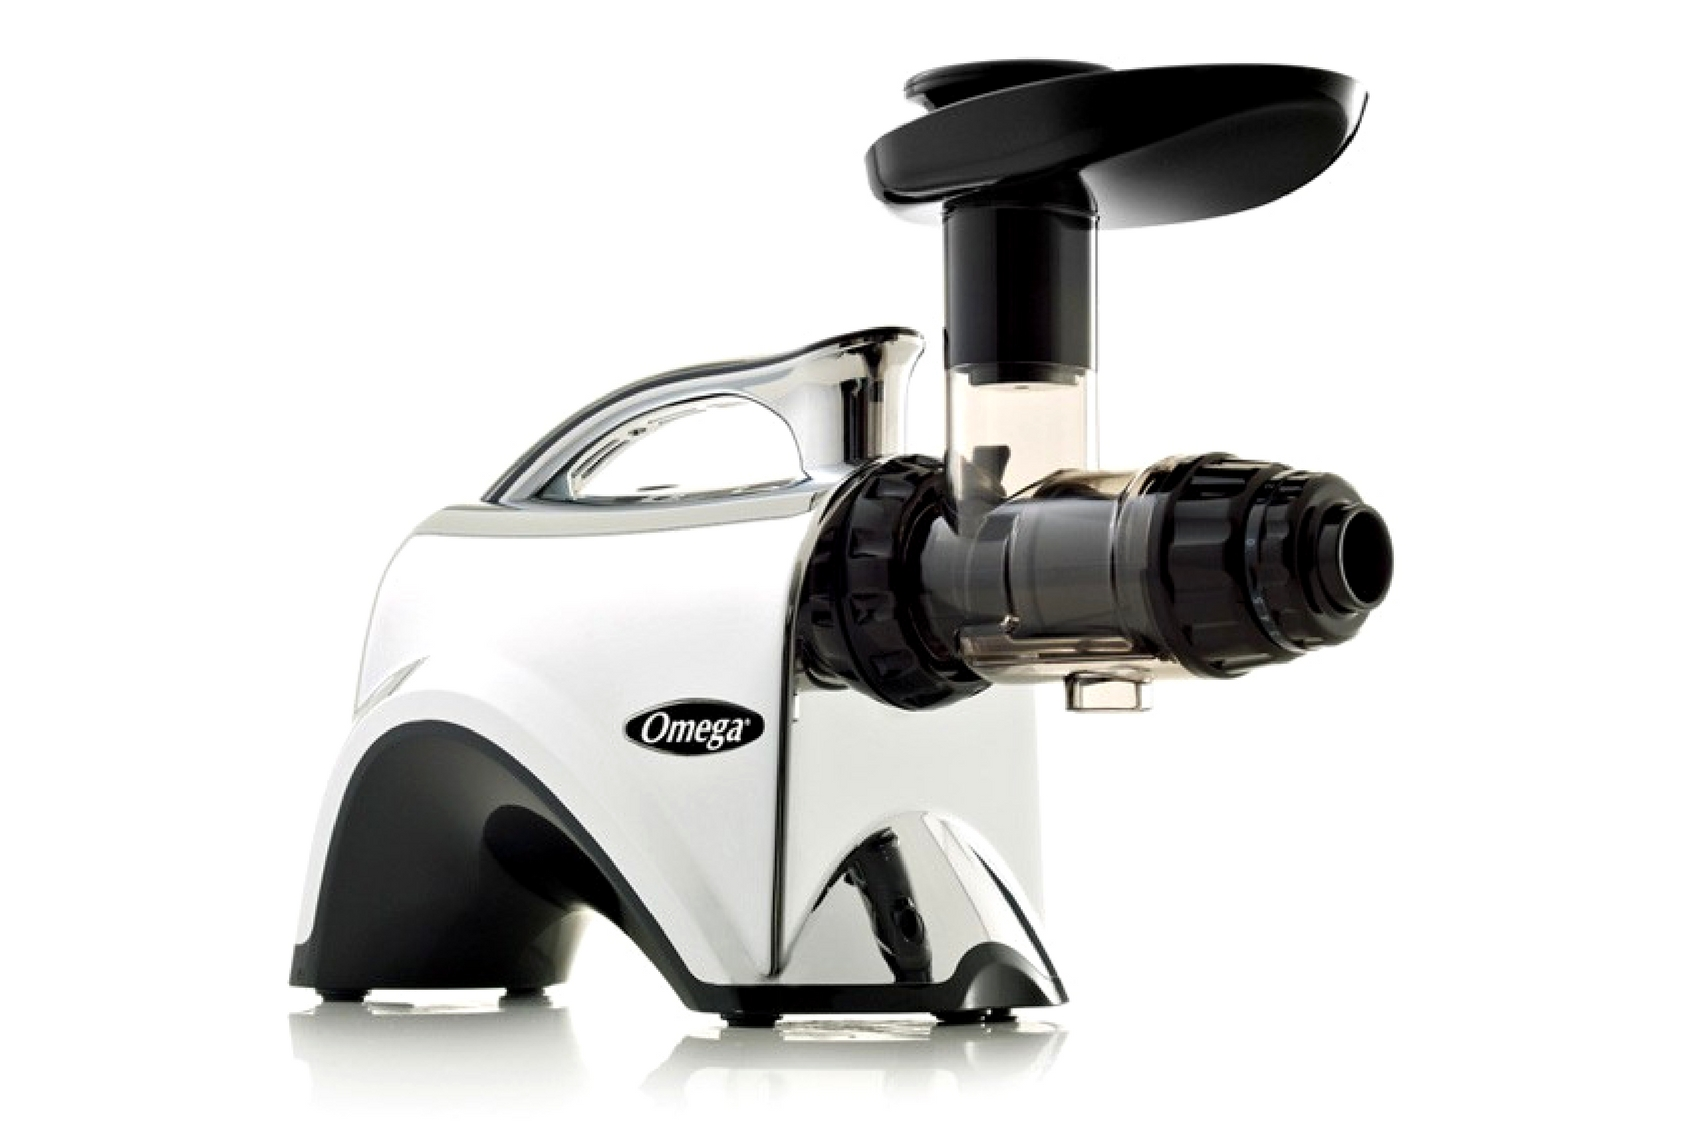 Omega NC900HDC Nutrition Center Juicer Review